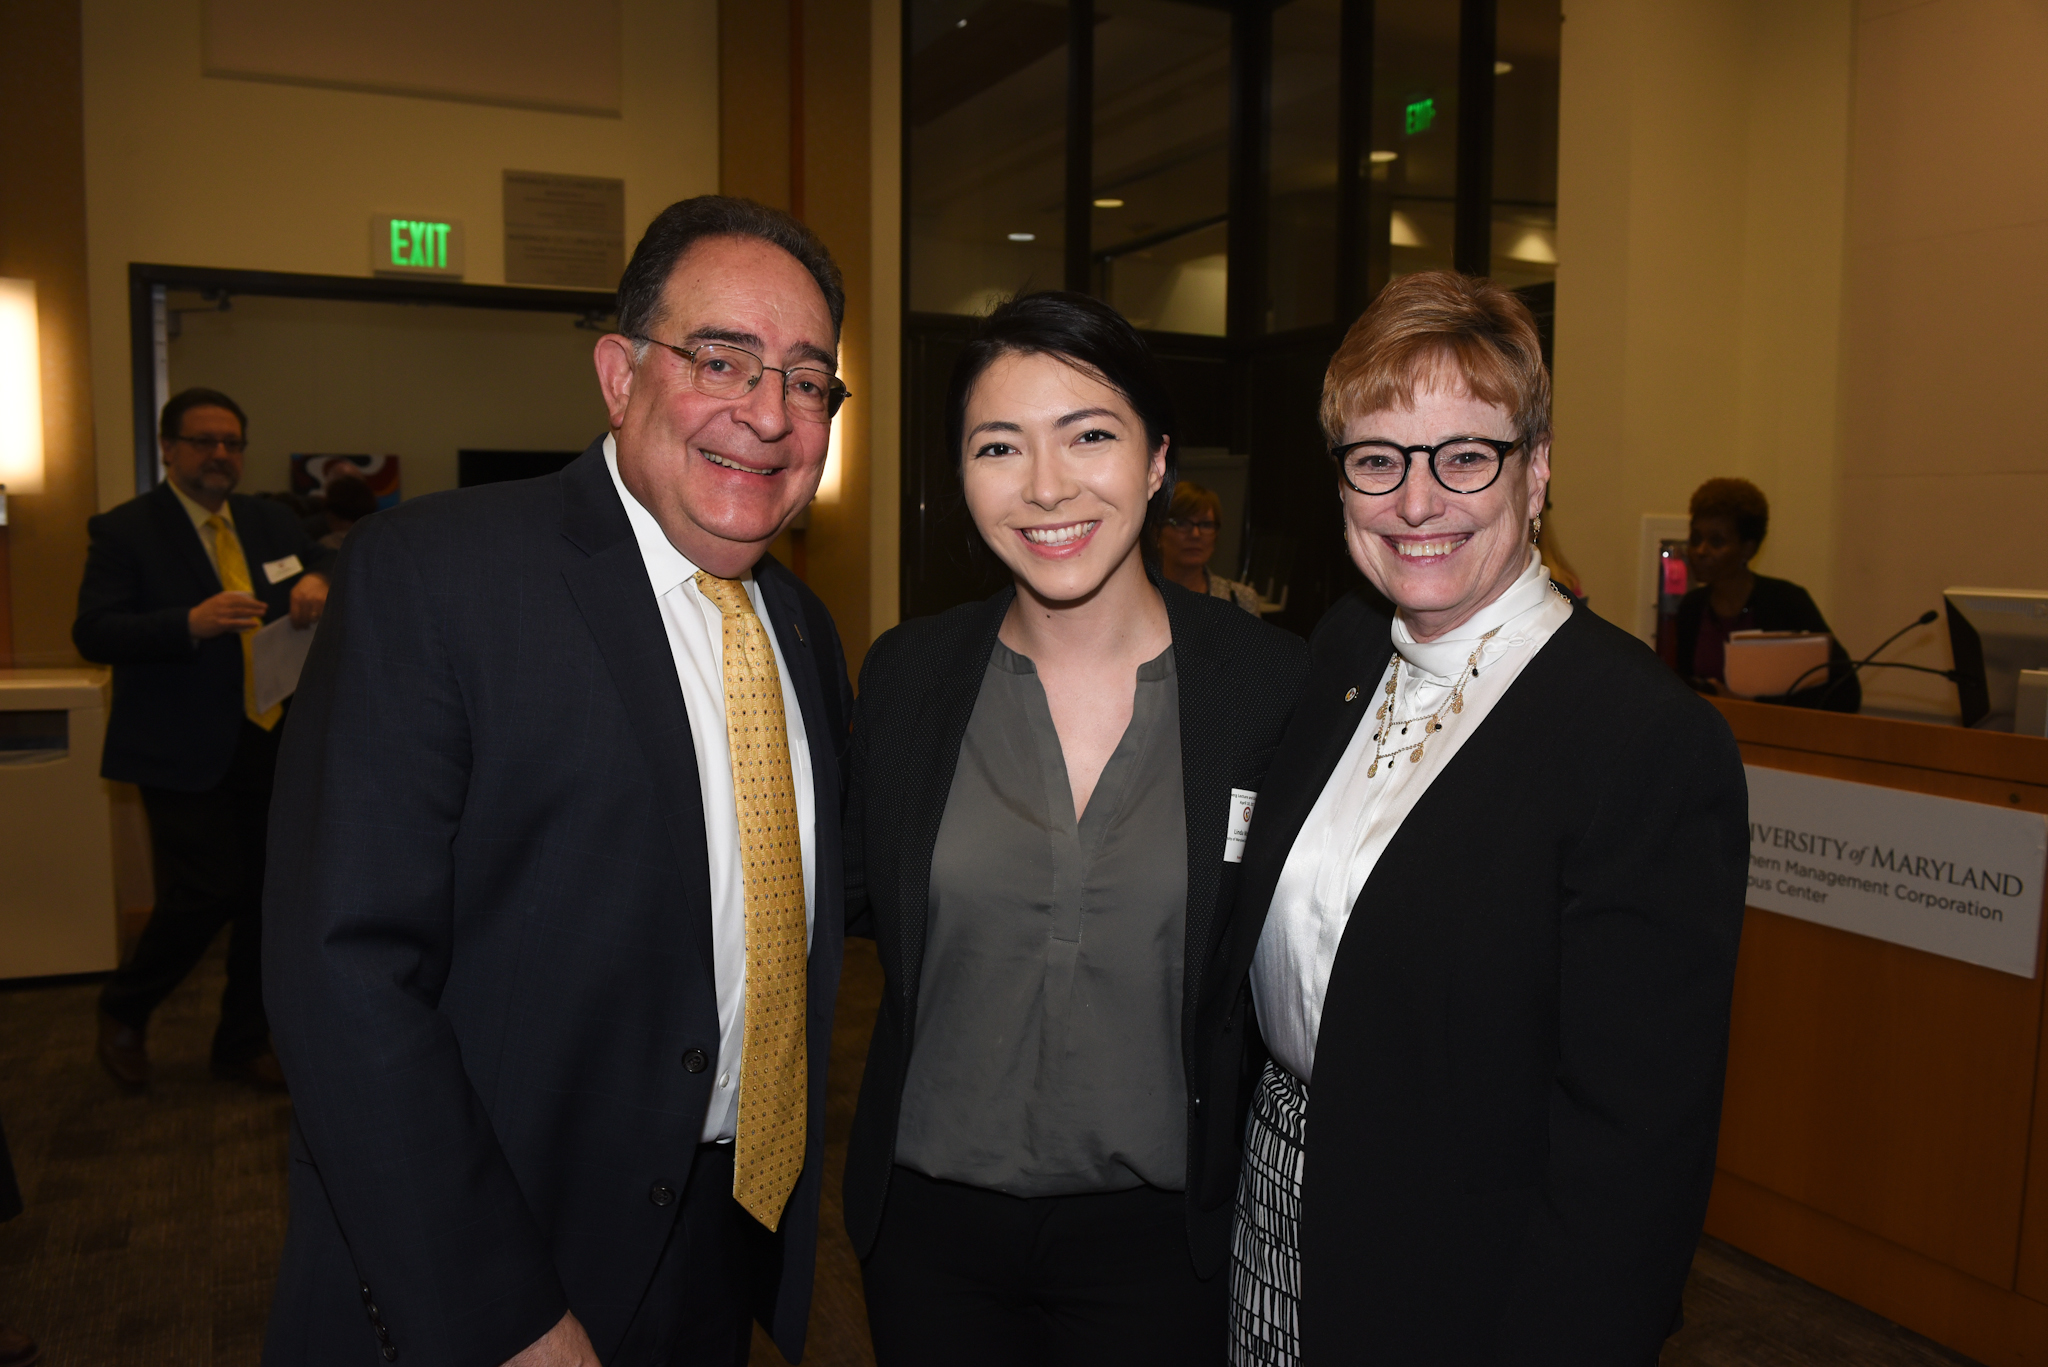 Civic Engagement Symposium - Image 18